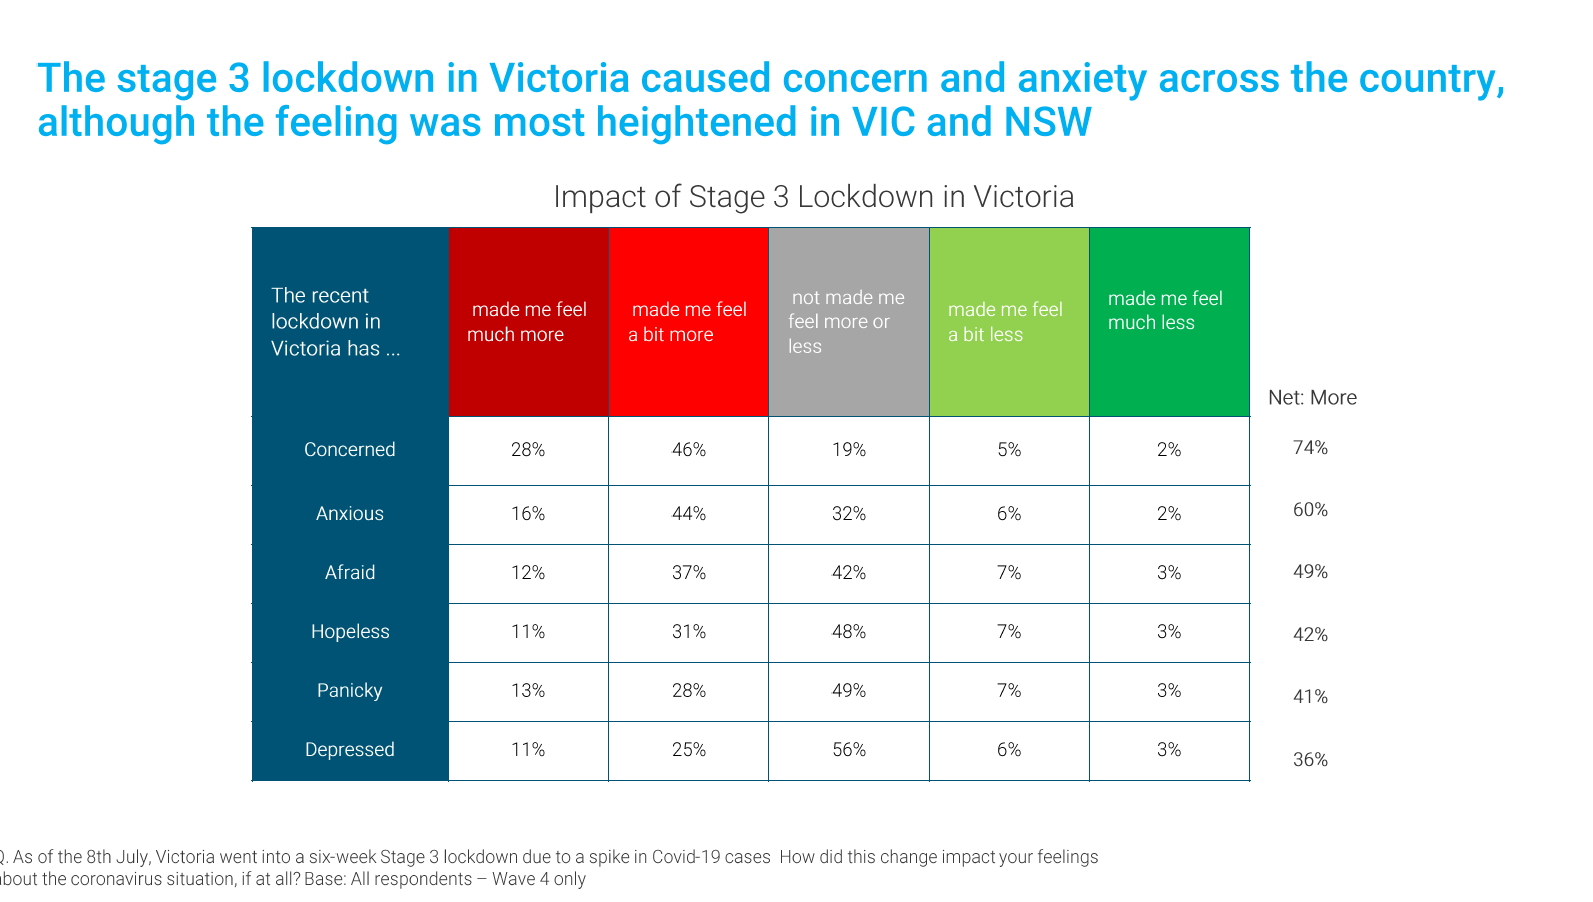 The stage 3 lockdown in VIC caused concern and anxiety across the country